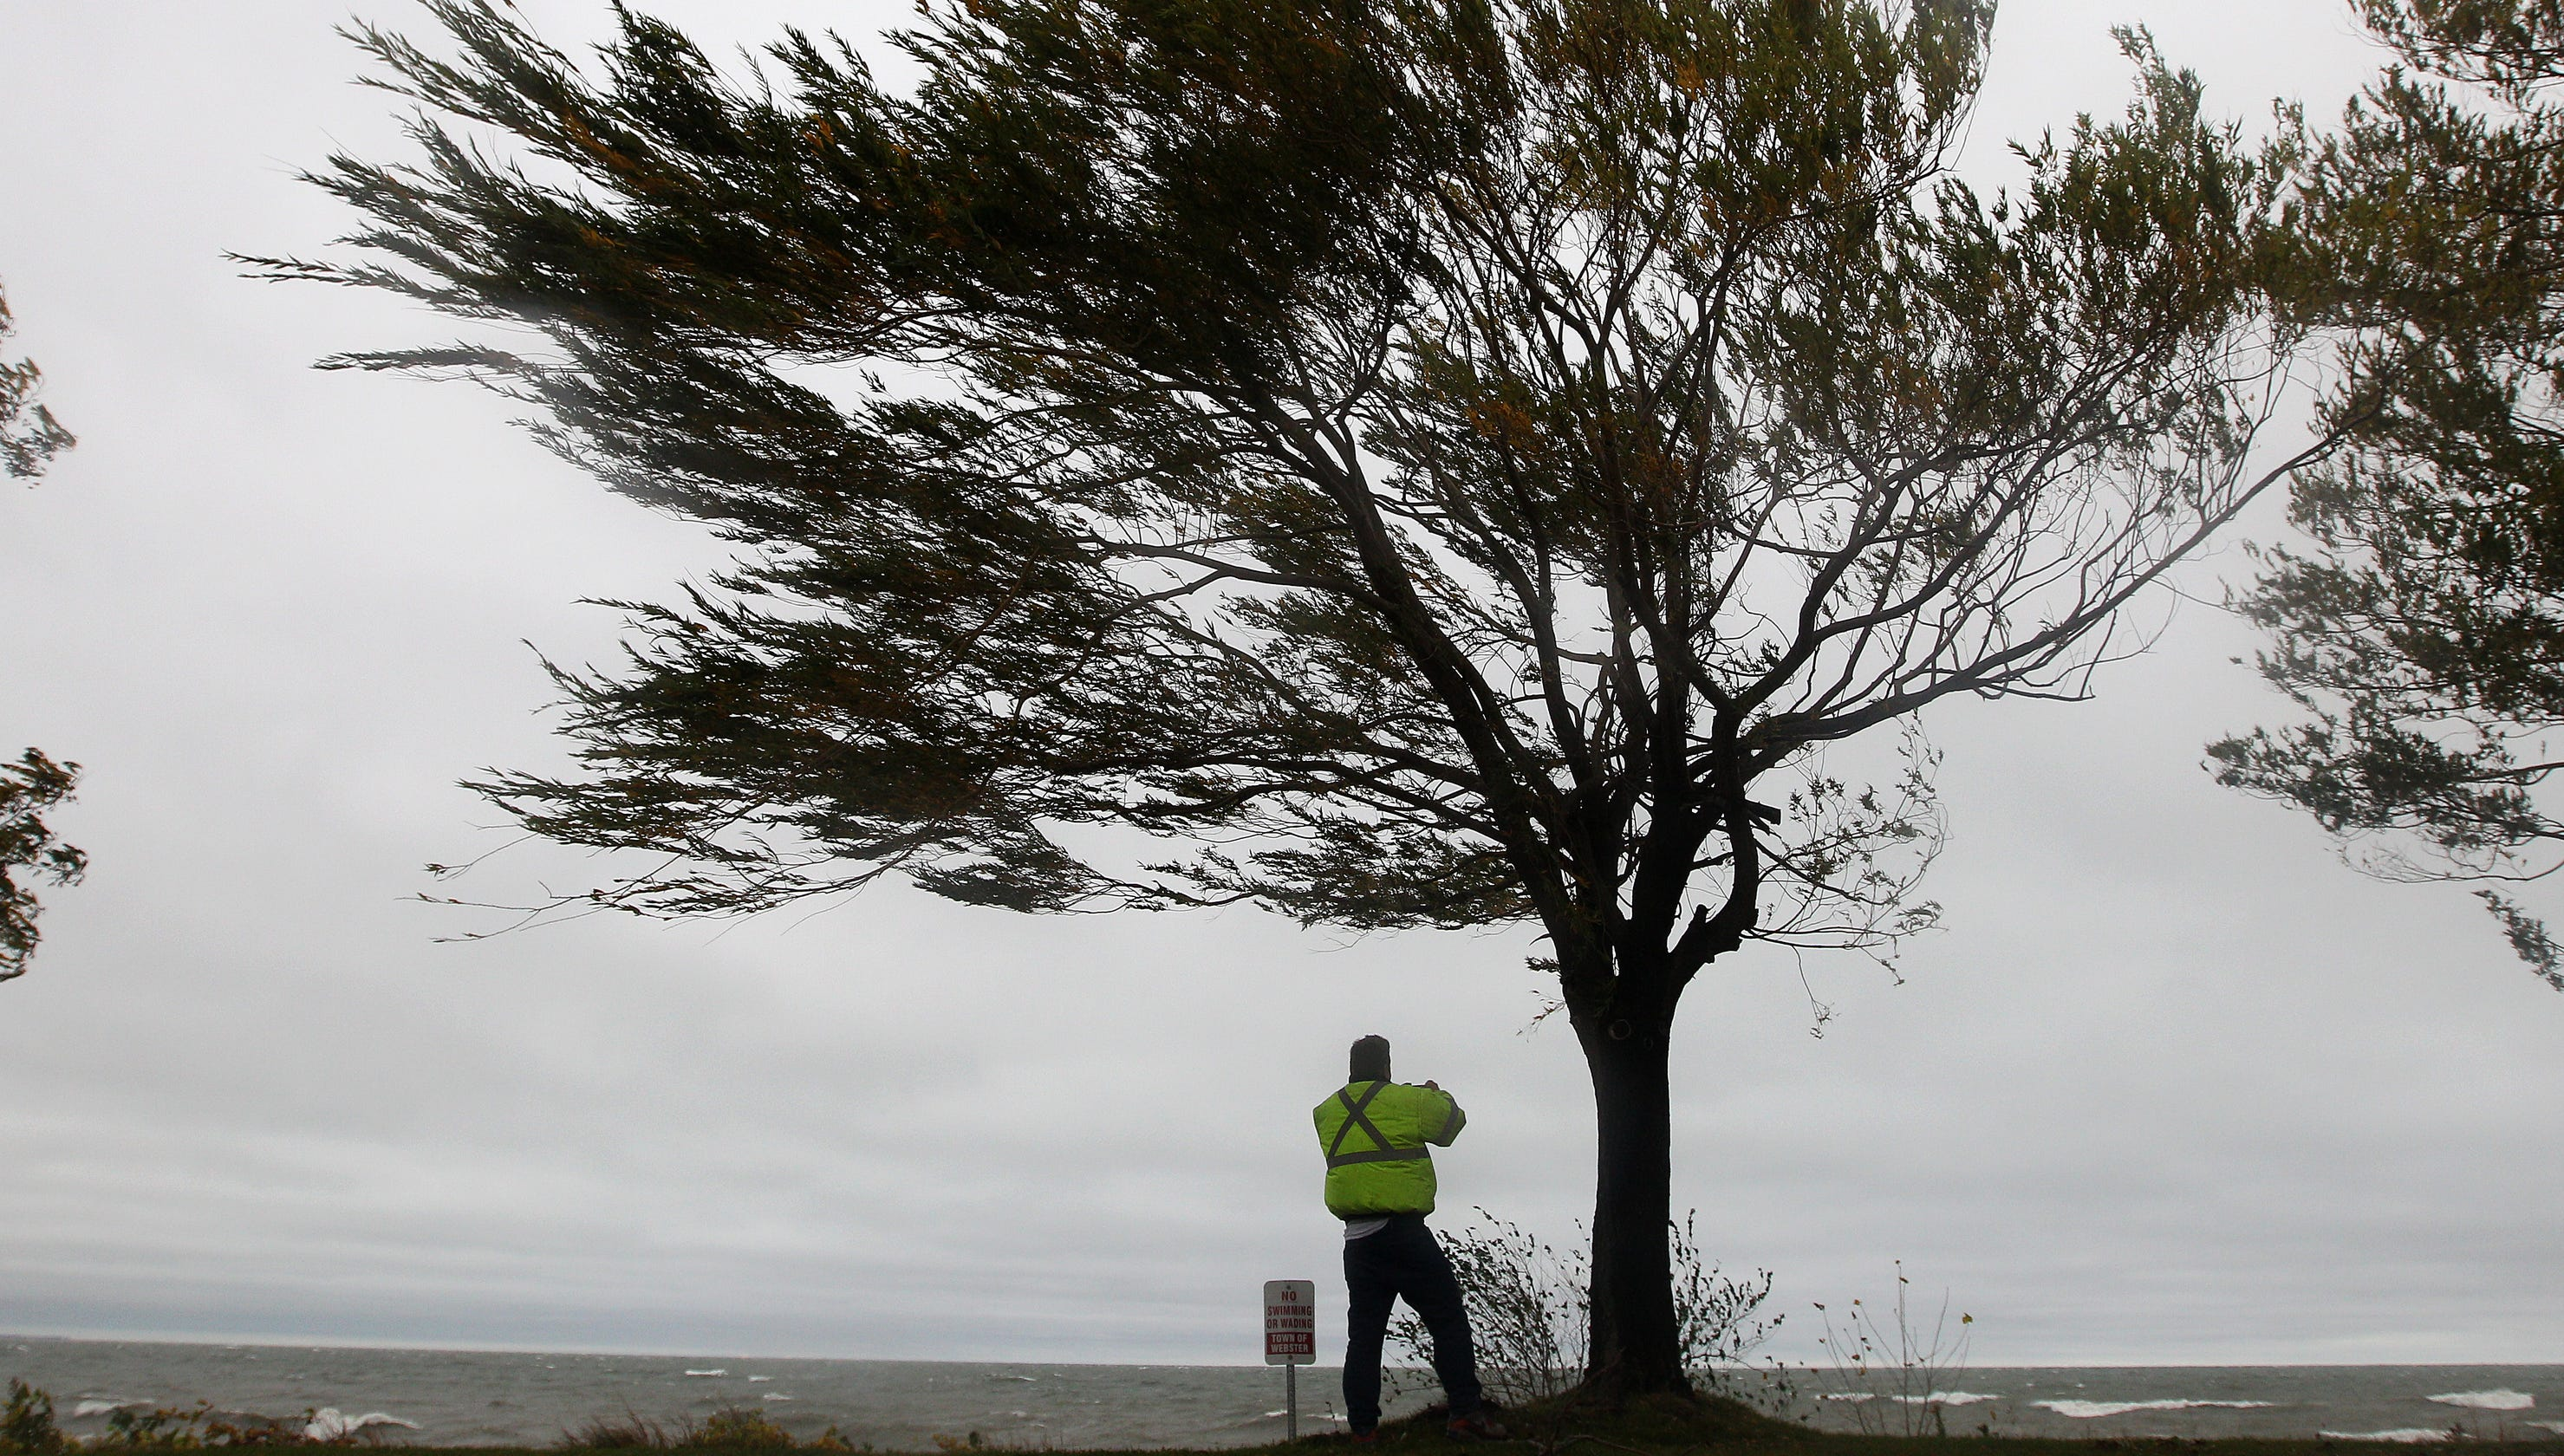 Rochester Weather: High wind warning for Monroe County